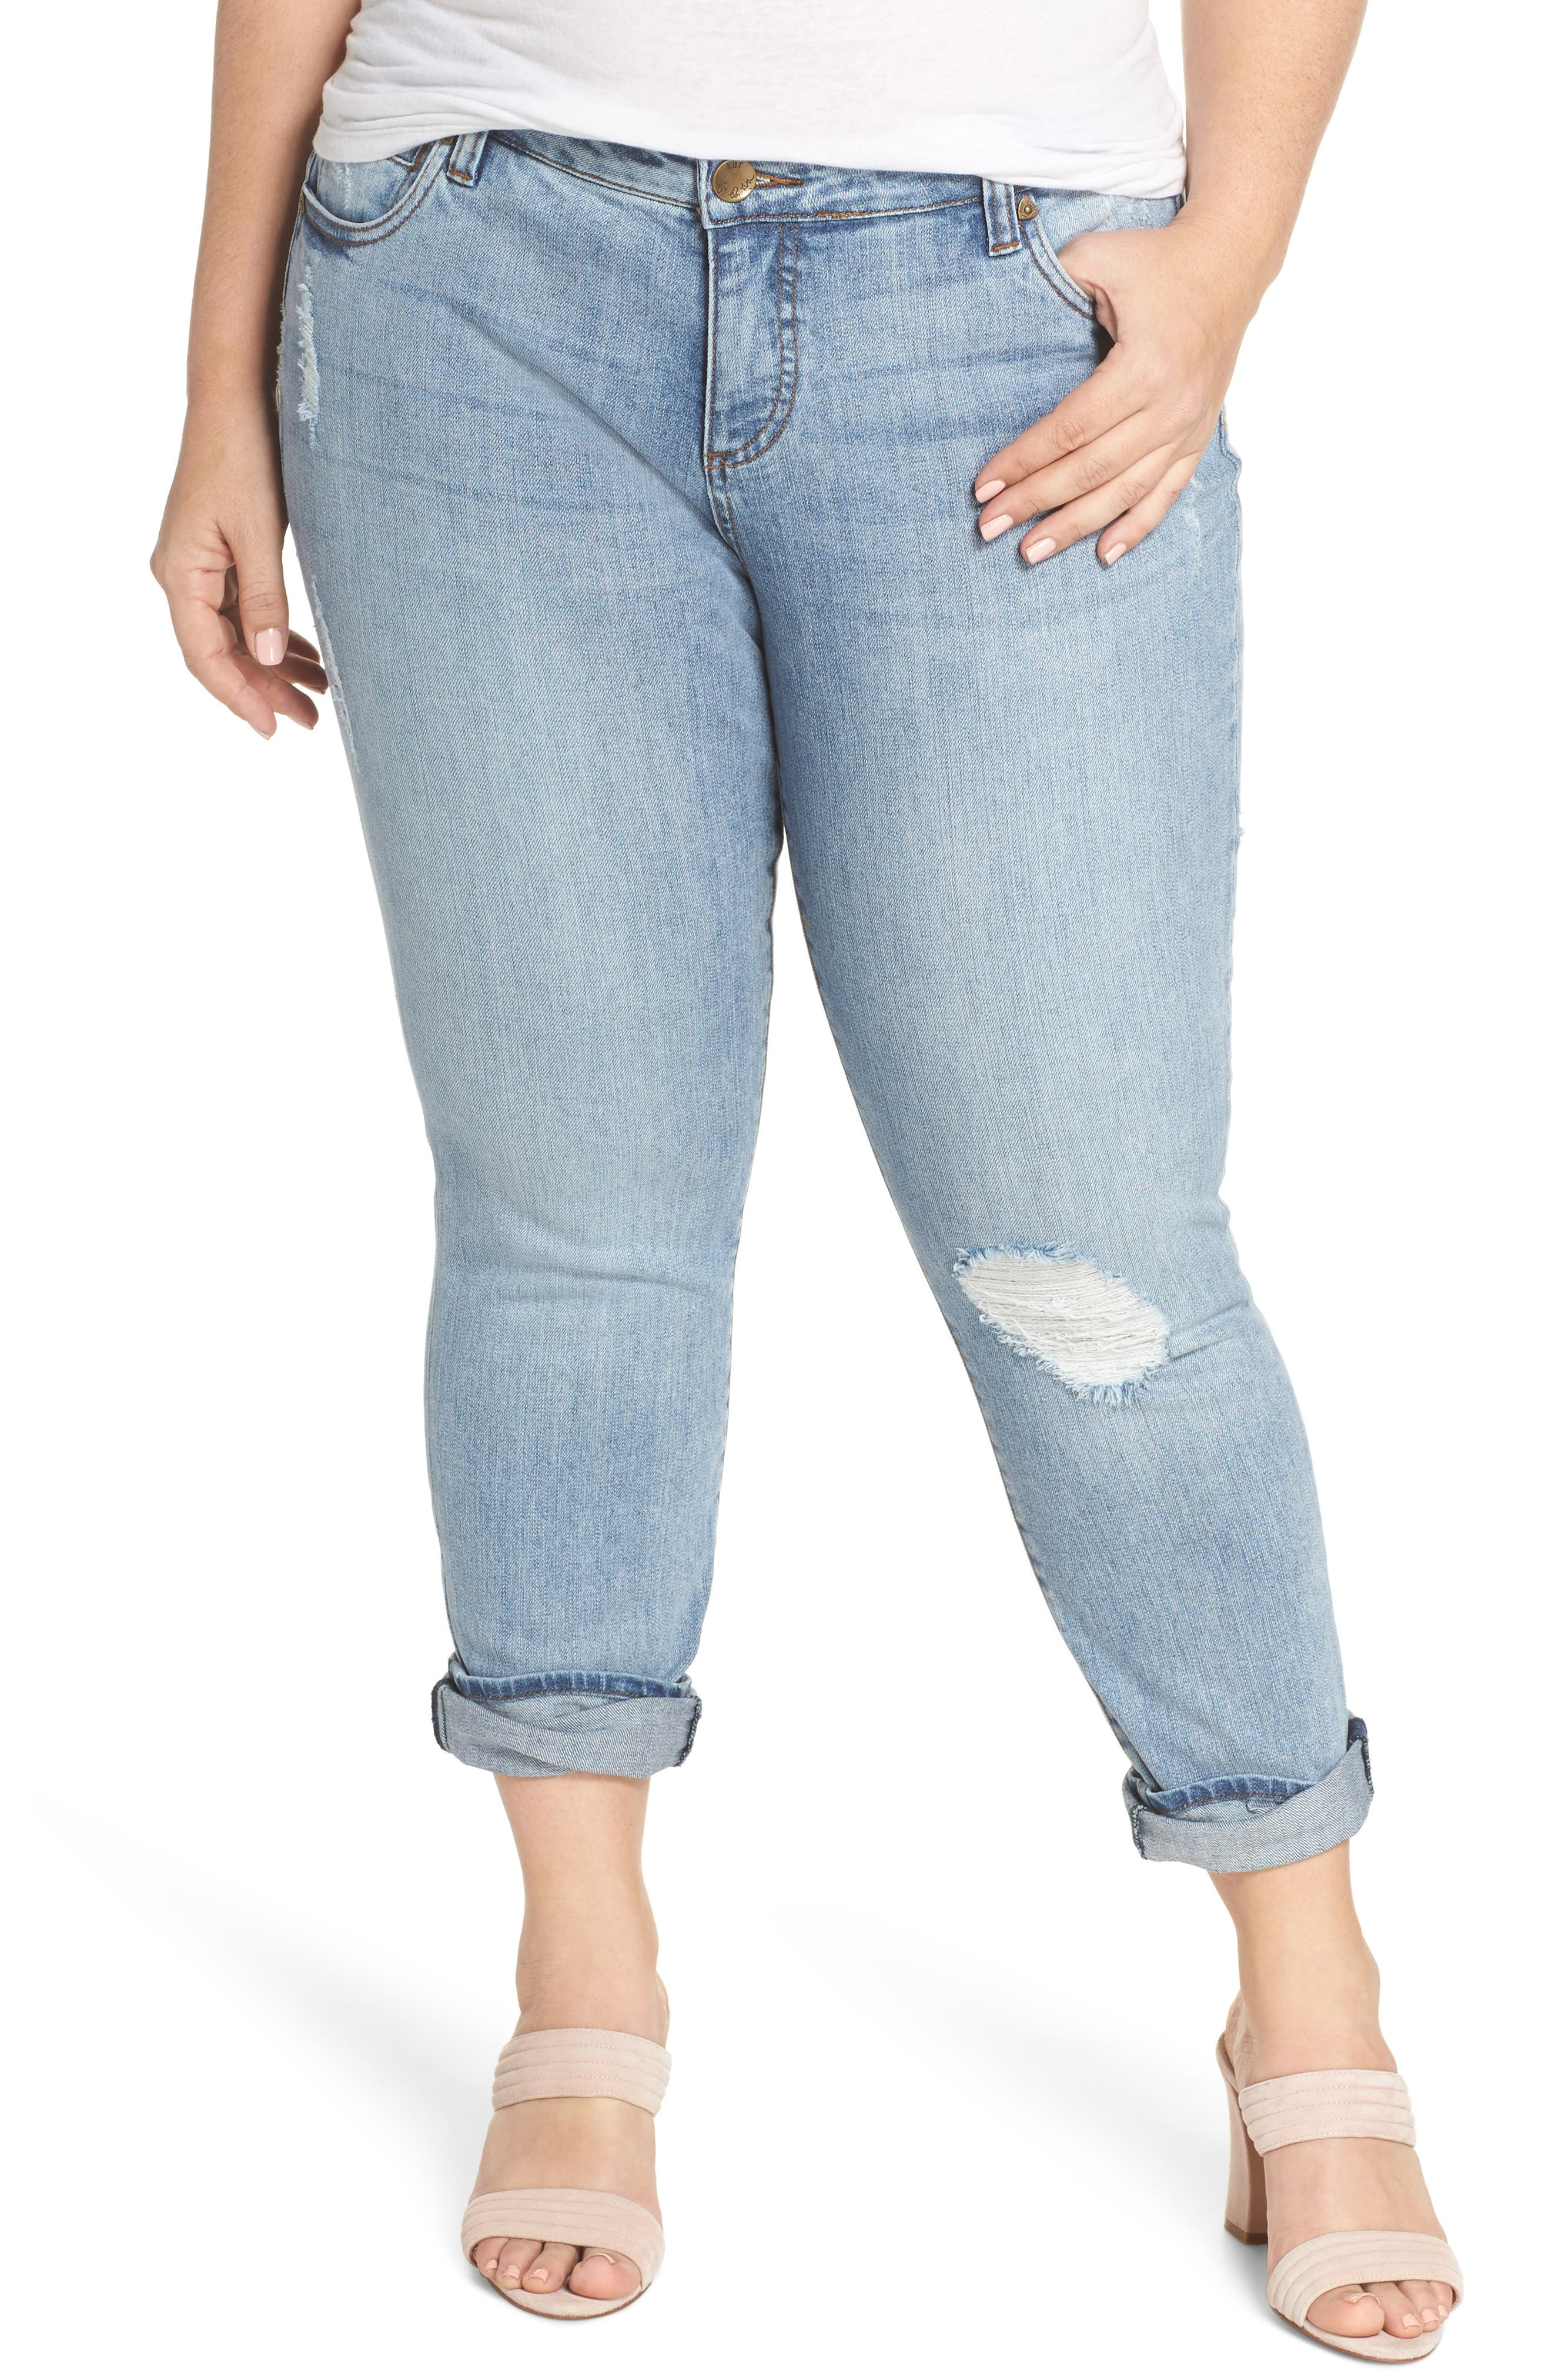 Main Image - KUT from the Kloth Catherine Distressed Boyfriend Jeans (Announce) (Plus Size)